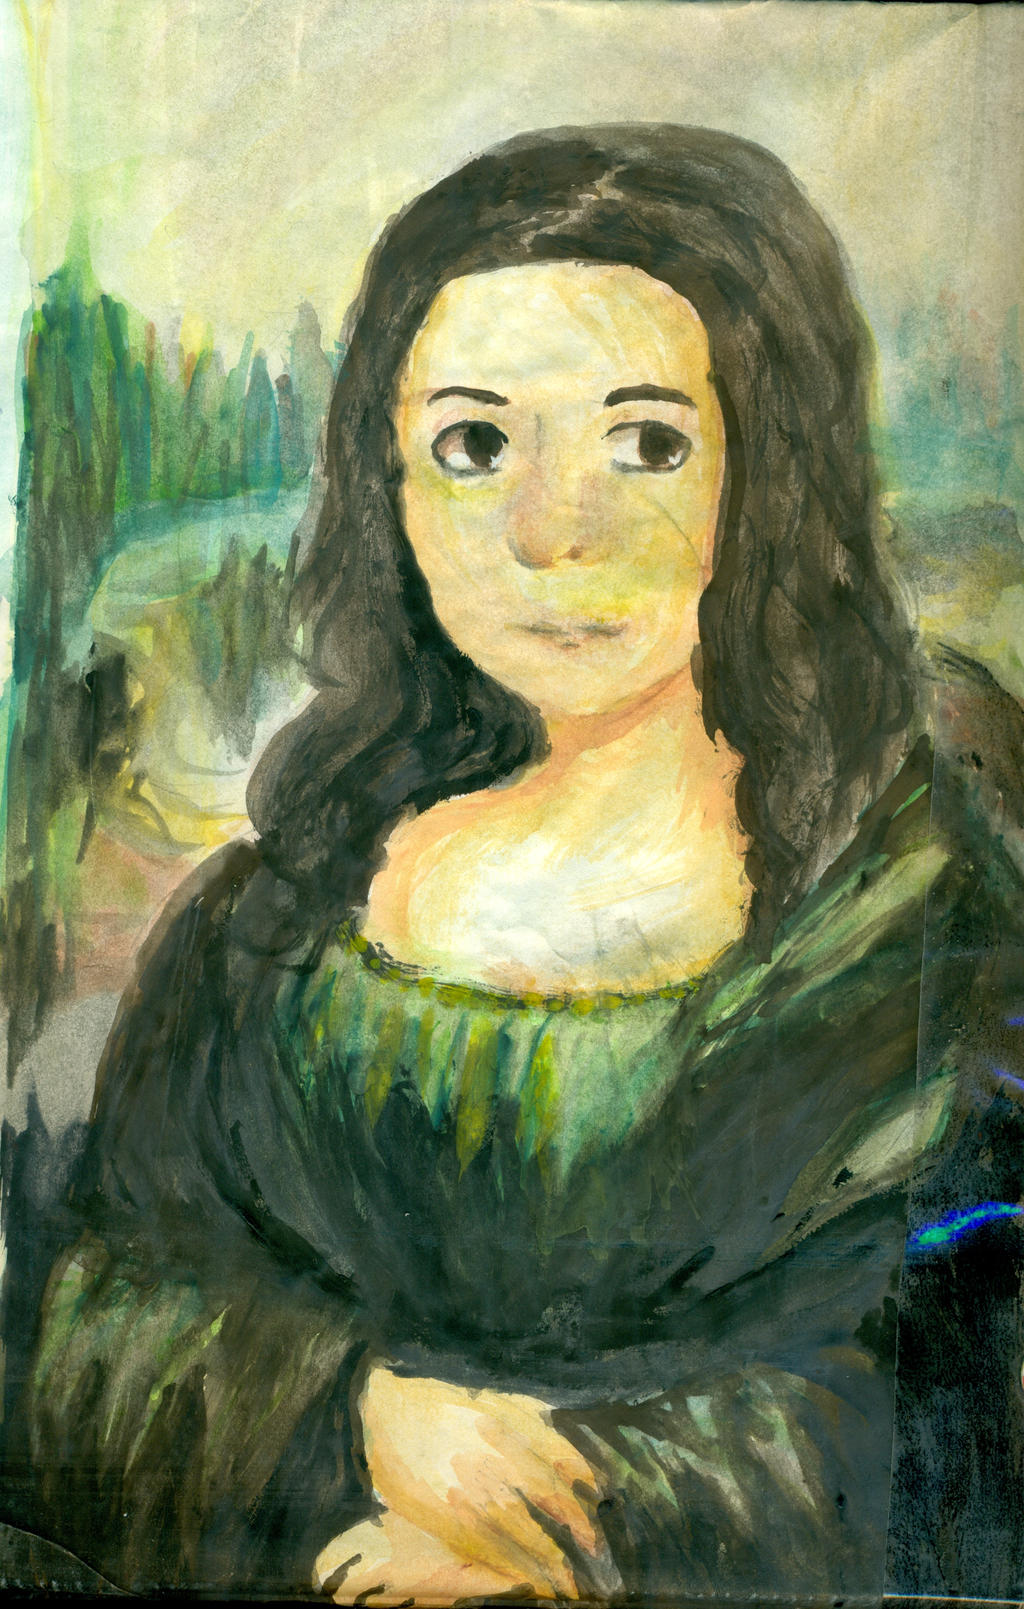 Mona lisa by hitheresmiley on deviantart for Can you buy the mona lisa